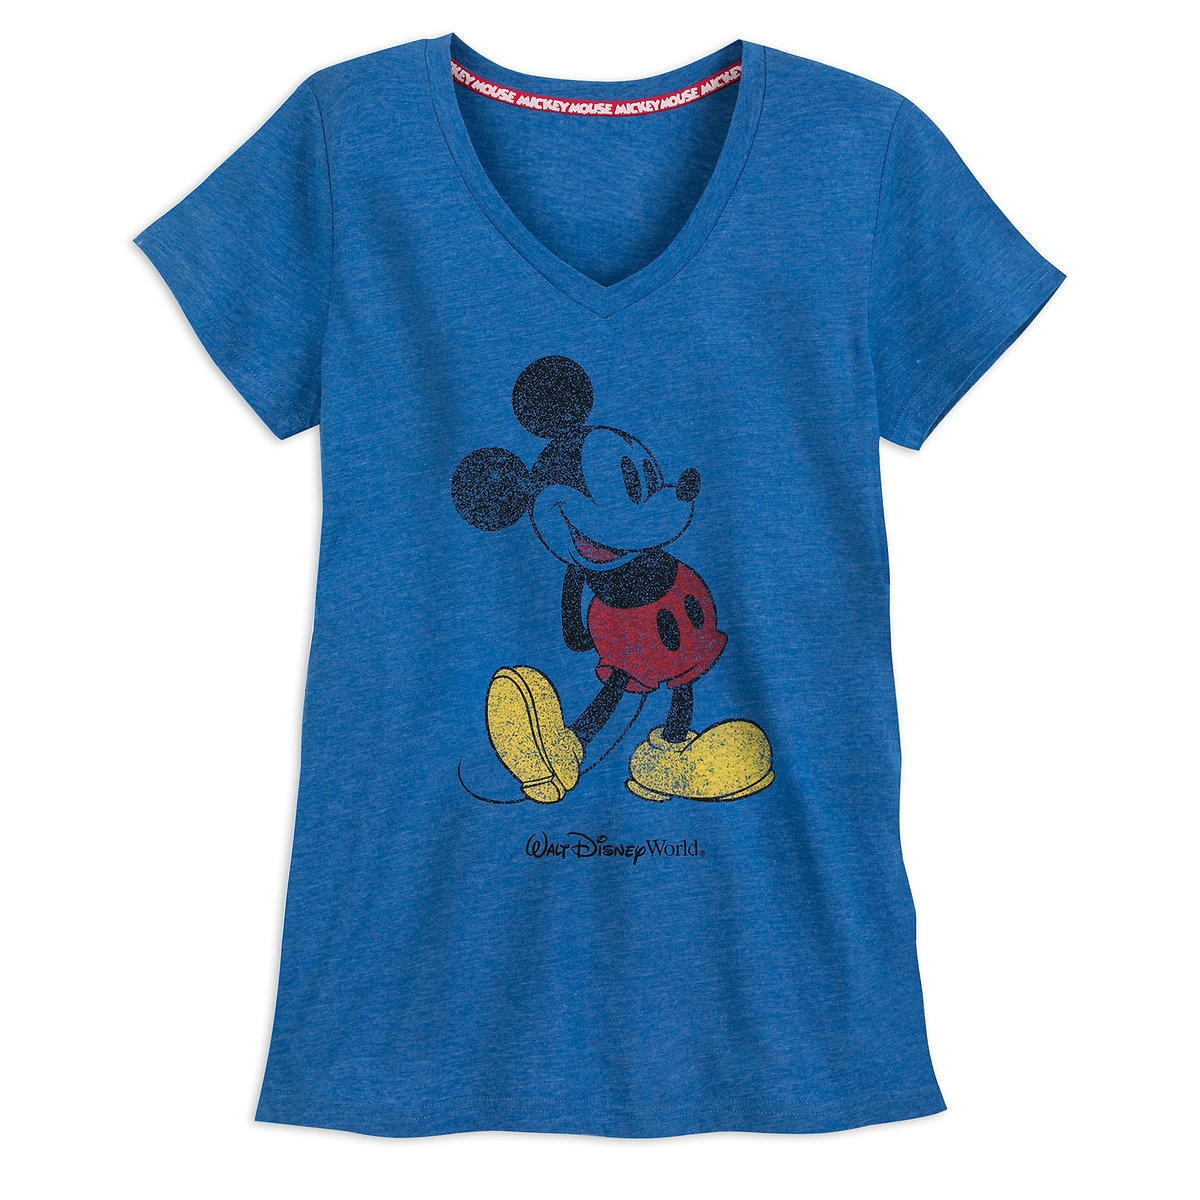 6a7ec081 Product Image of Mickey Mouse Classic T-Shirt for Women - Walt Disney World  -